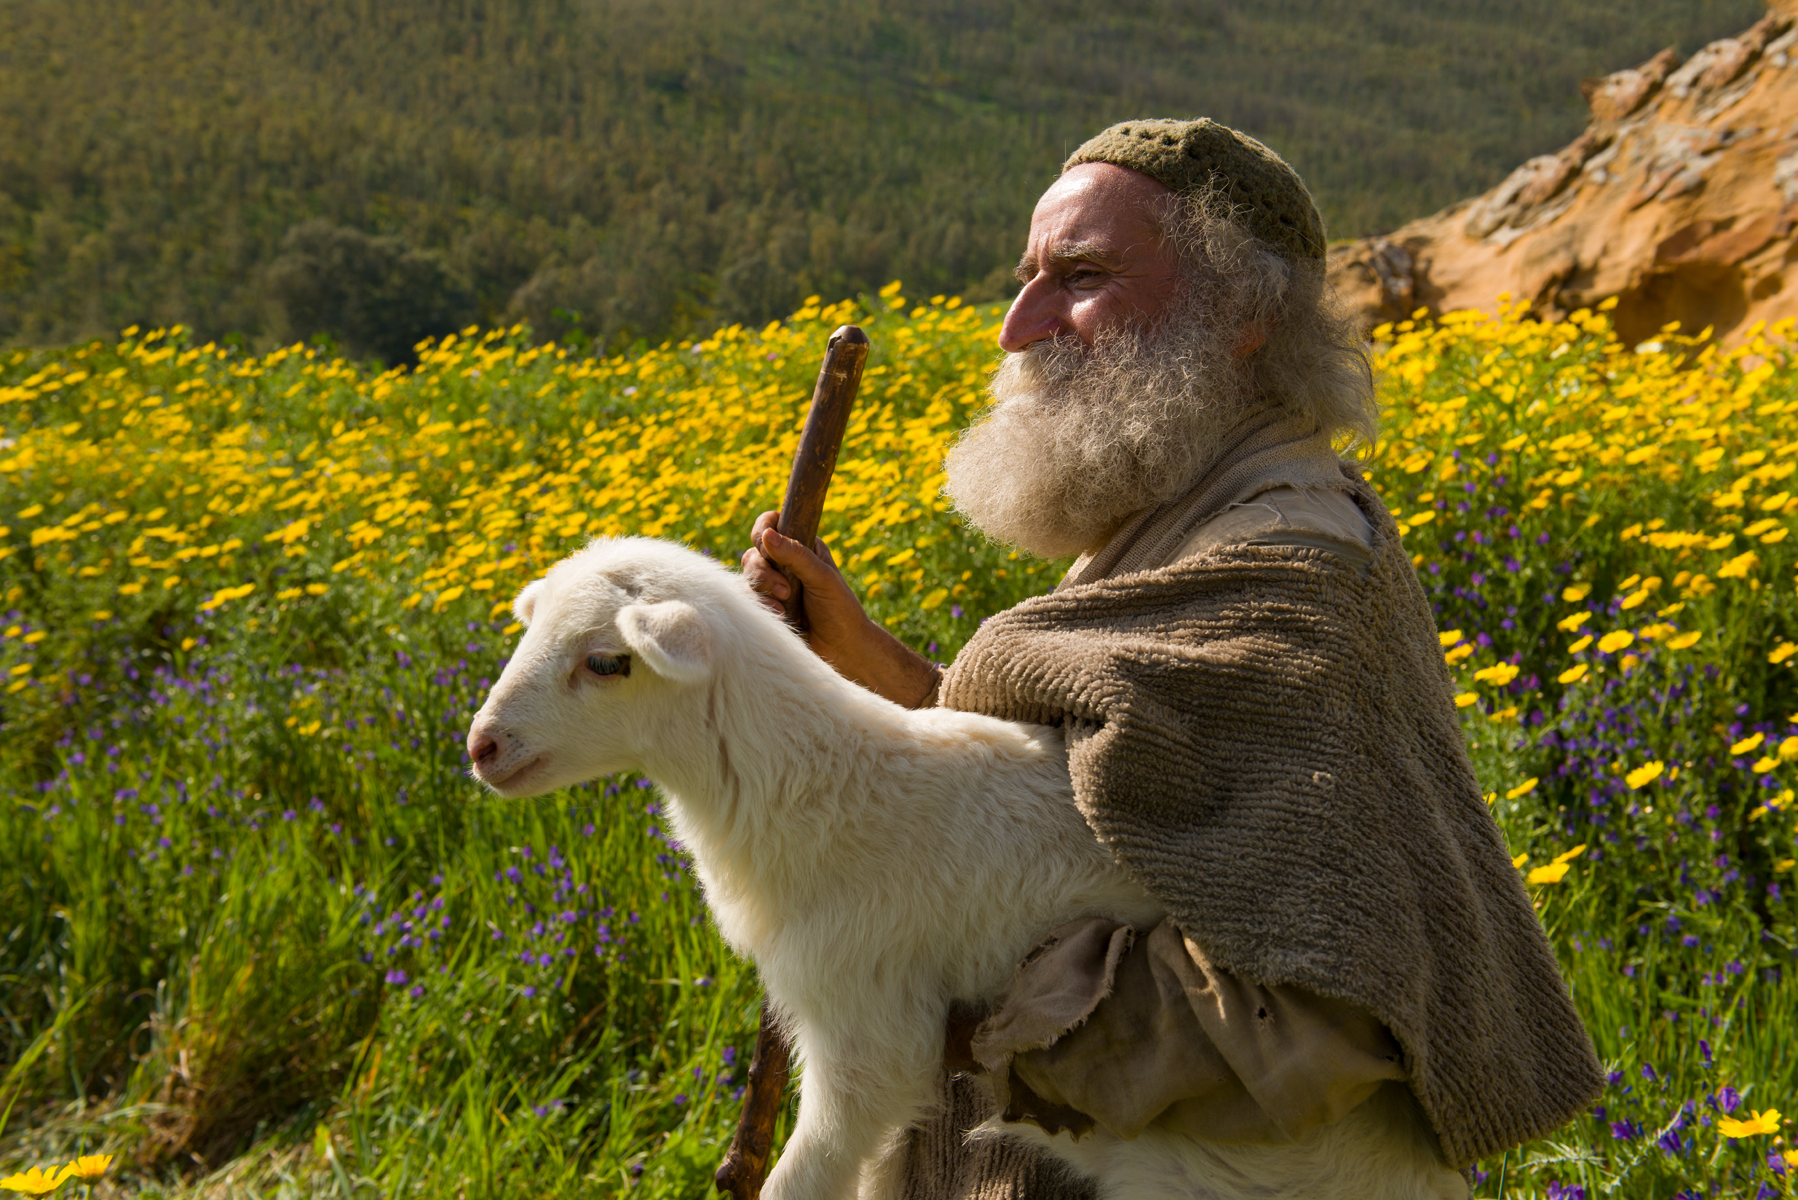 Bible Stories The Parable Of The Lost Sheep